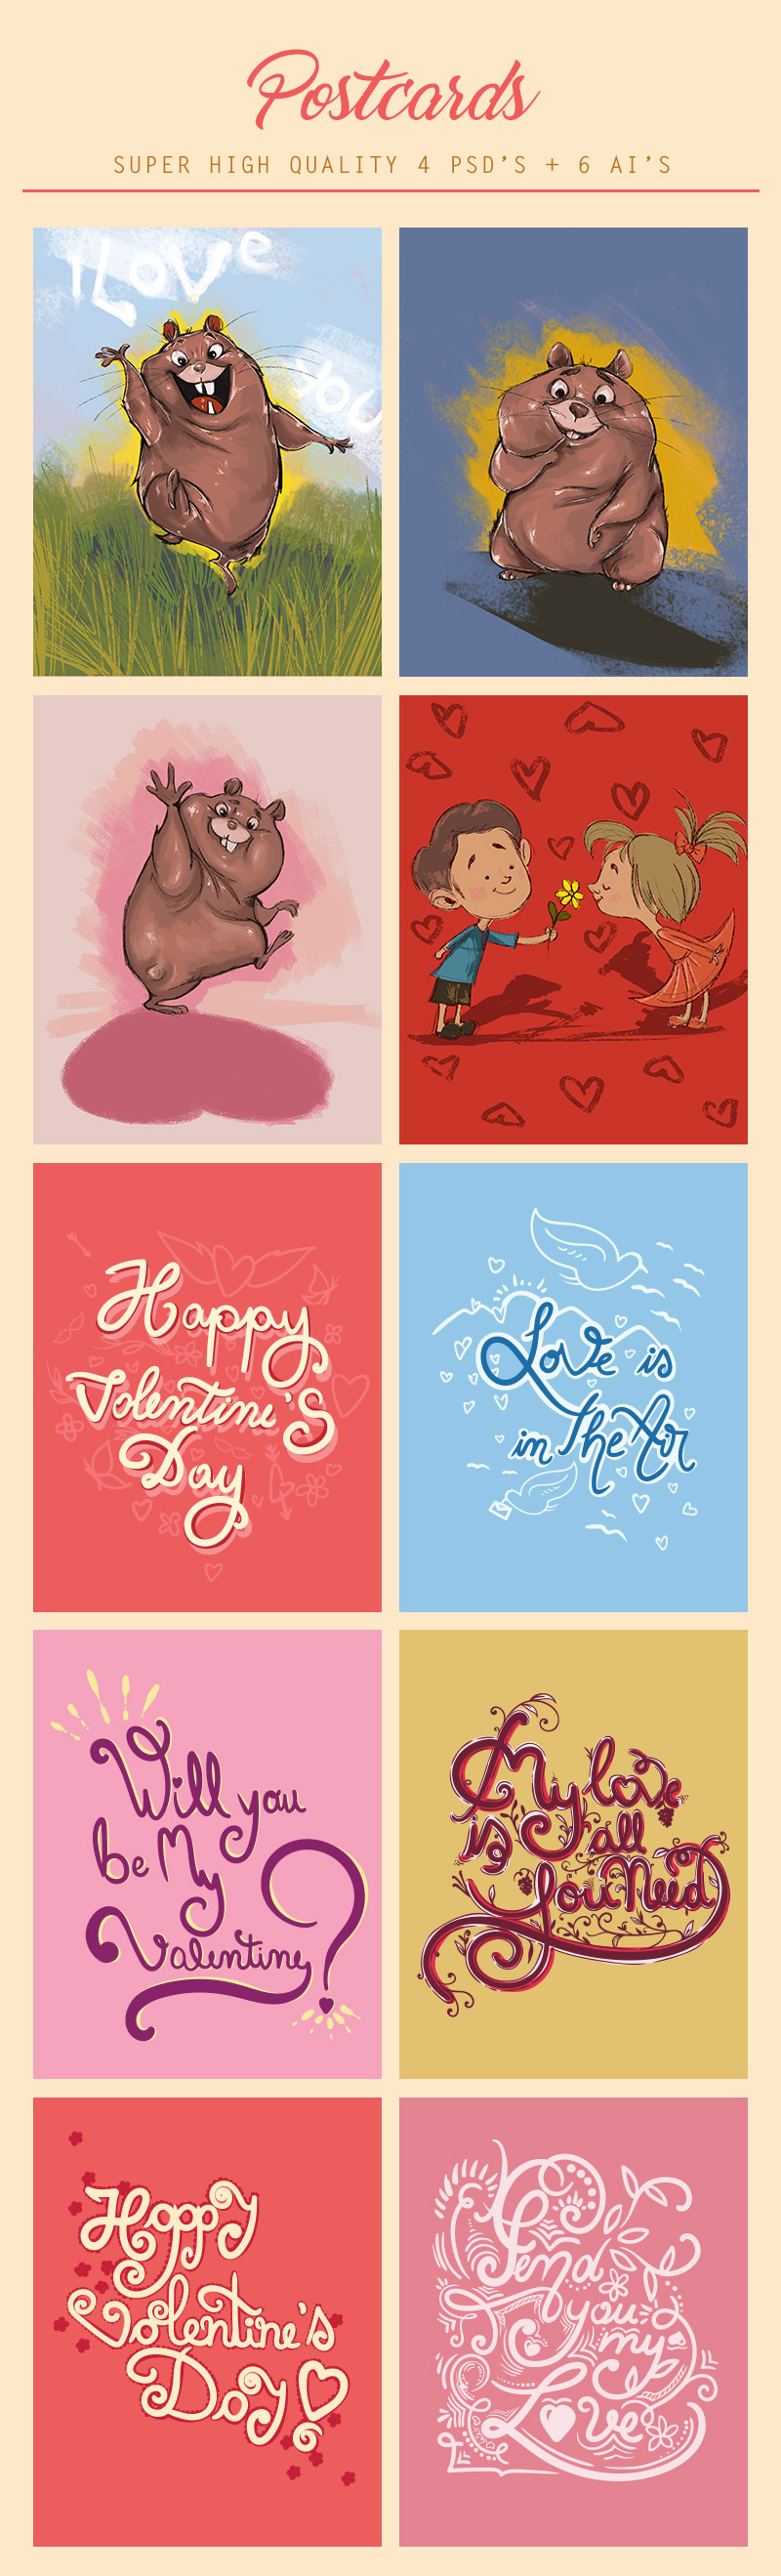 Valentines-Day-Preview-Elements-19